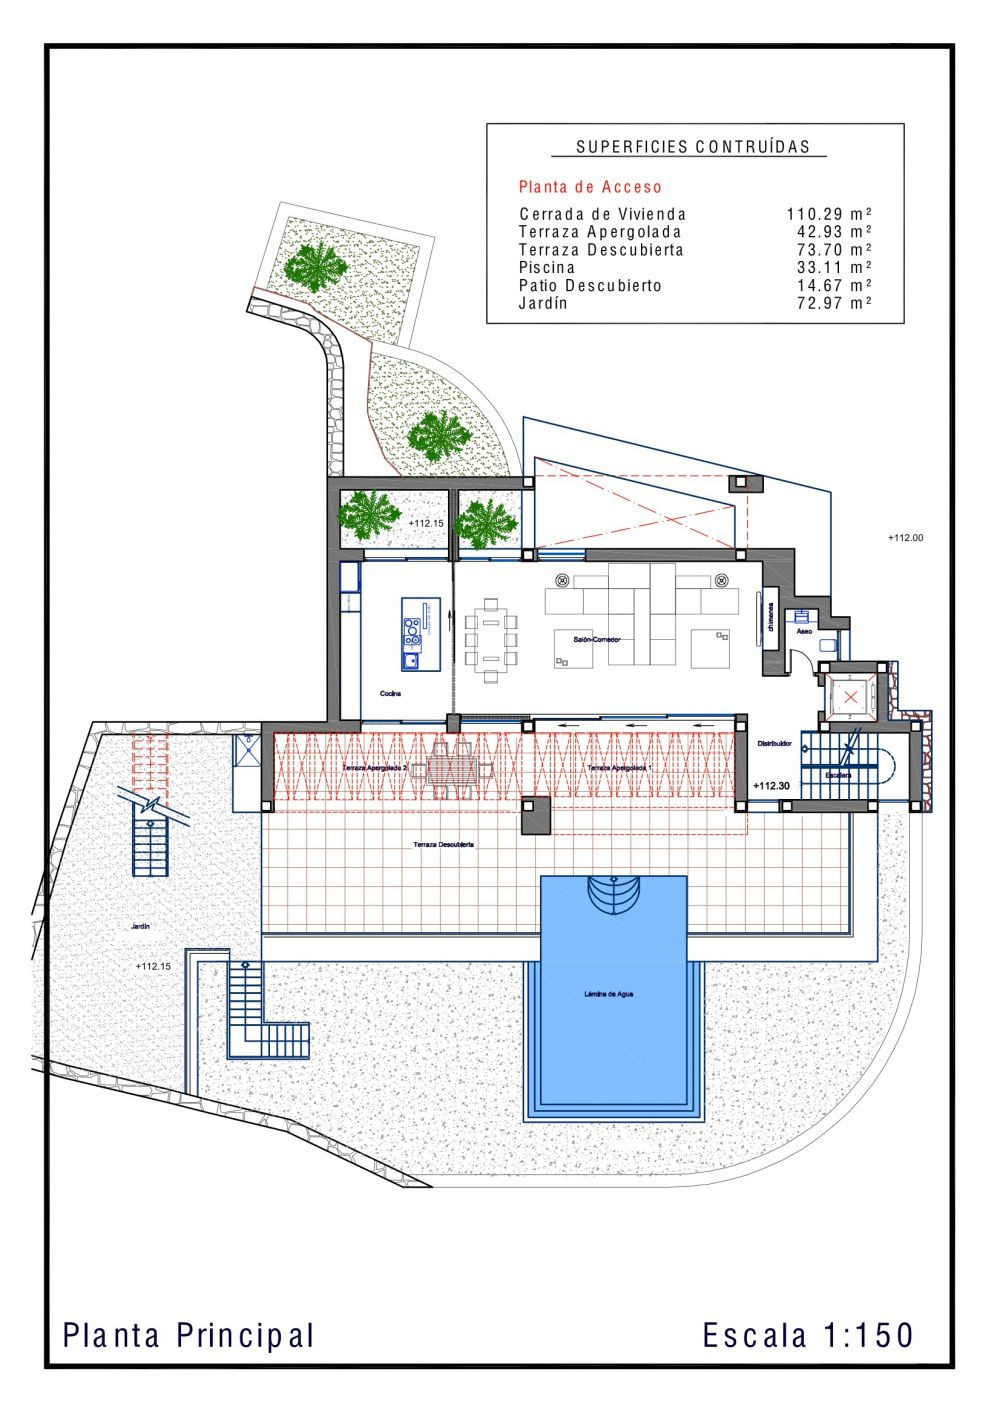 Agreeable Floor Plan With Spacious Living Space and Terrace Design